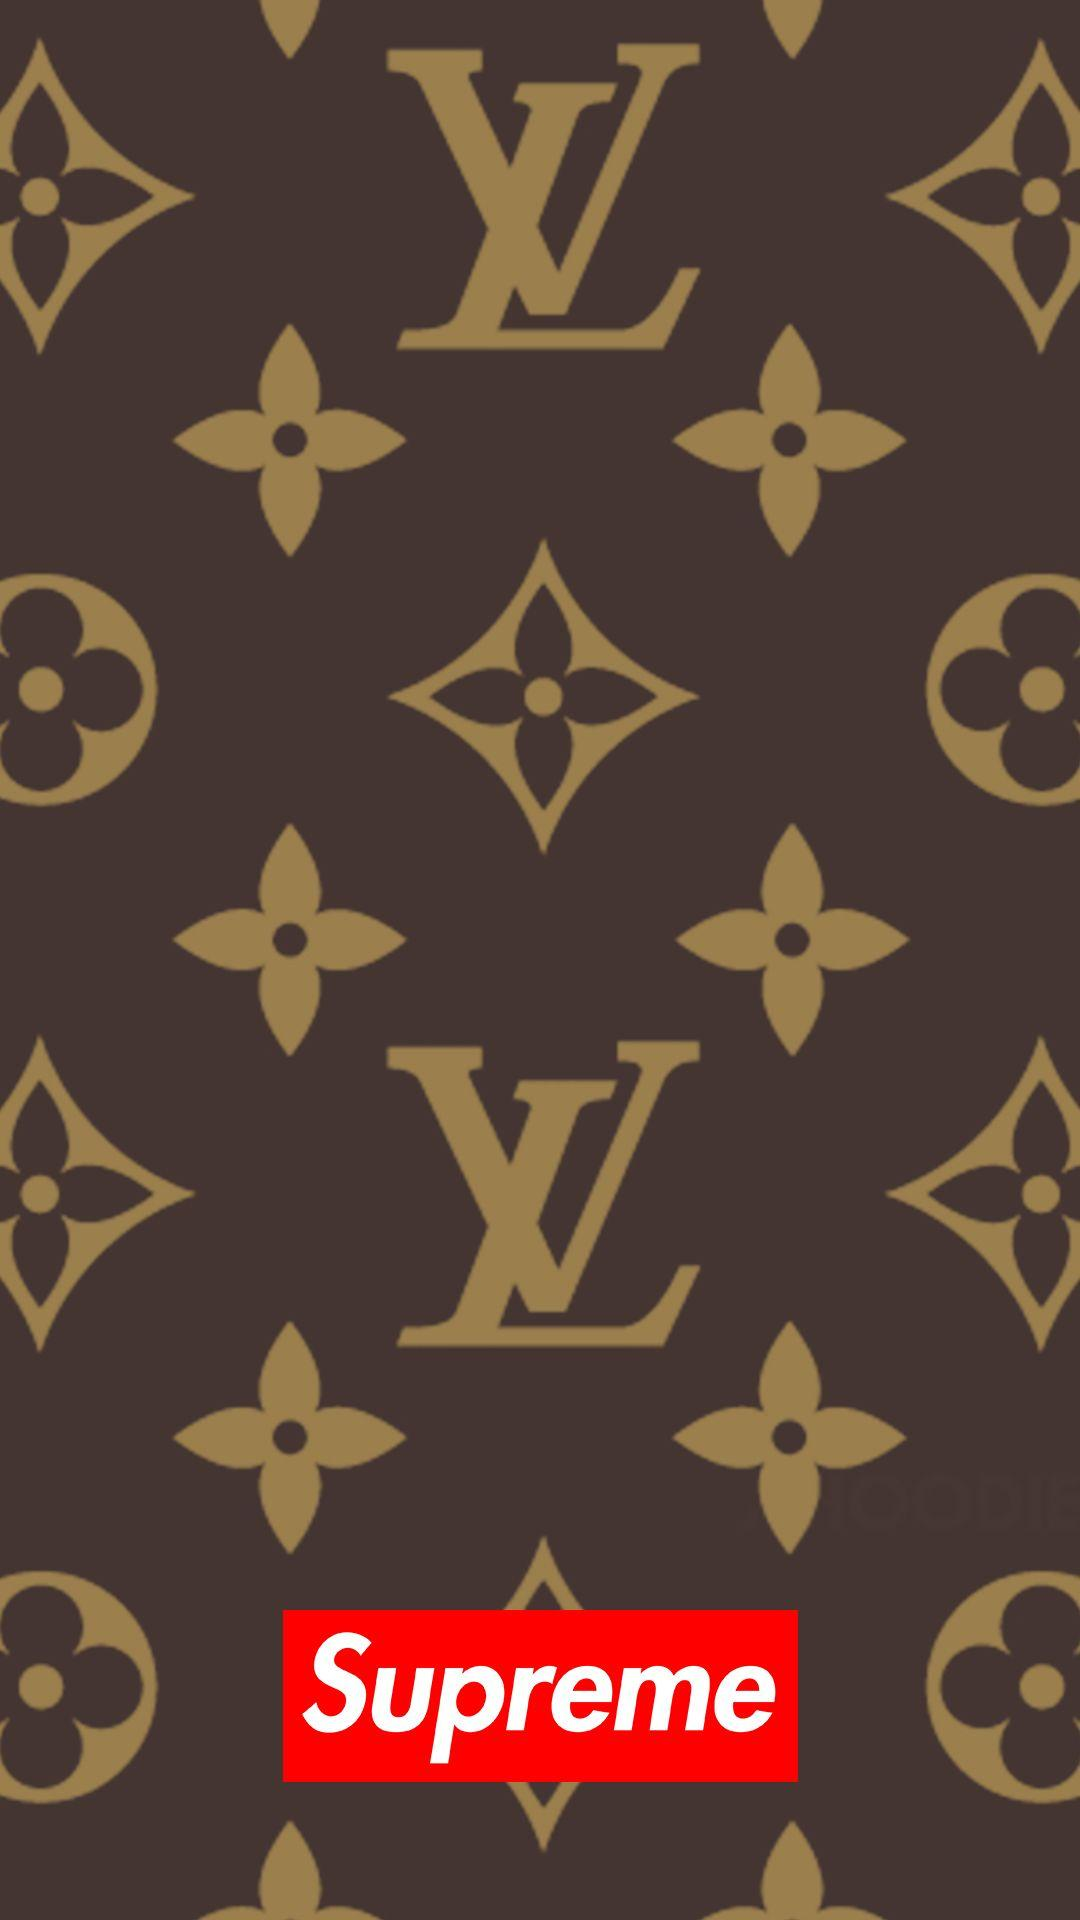 Download Supreme x louis vuitton 1080 x 1920 Wallpapers - 4771472 .